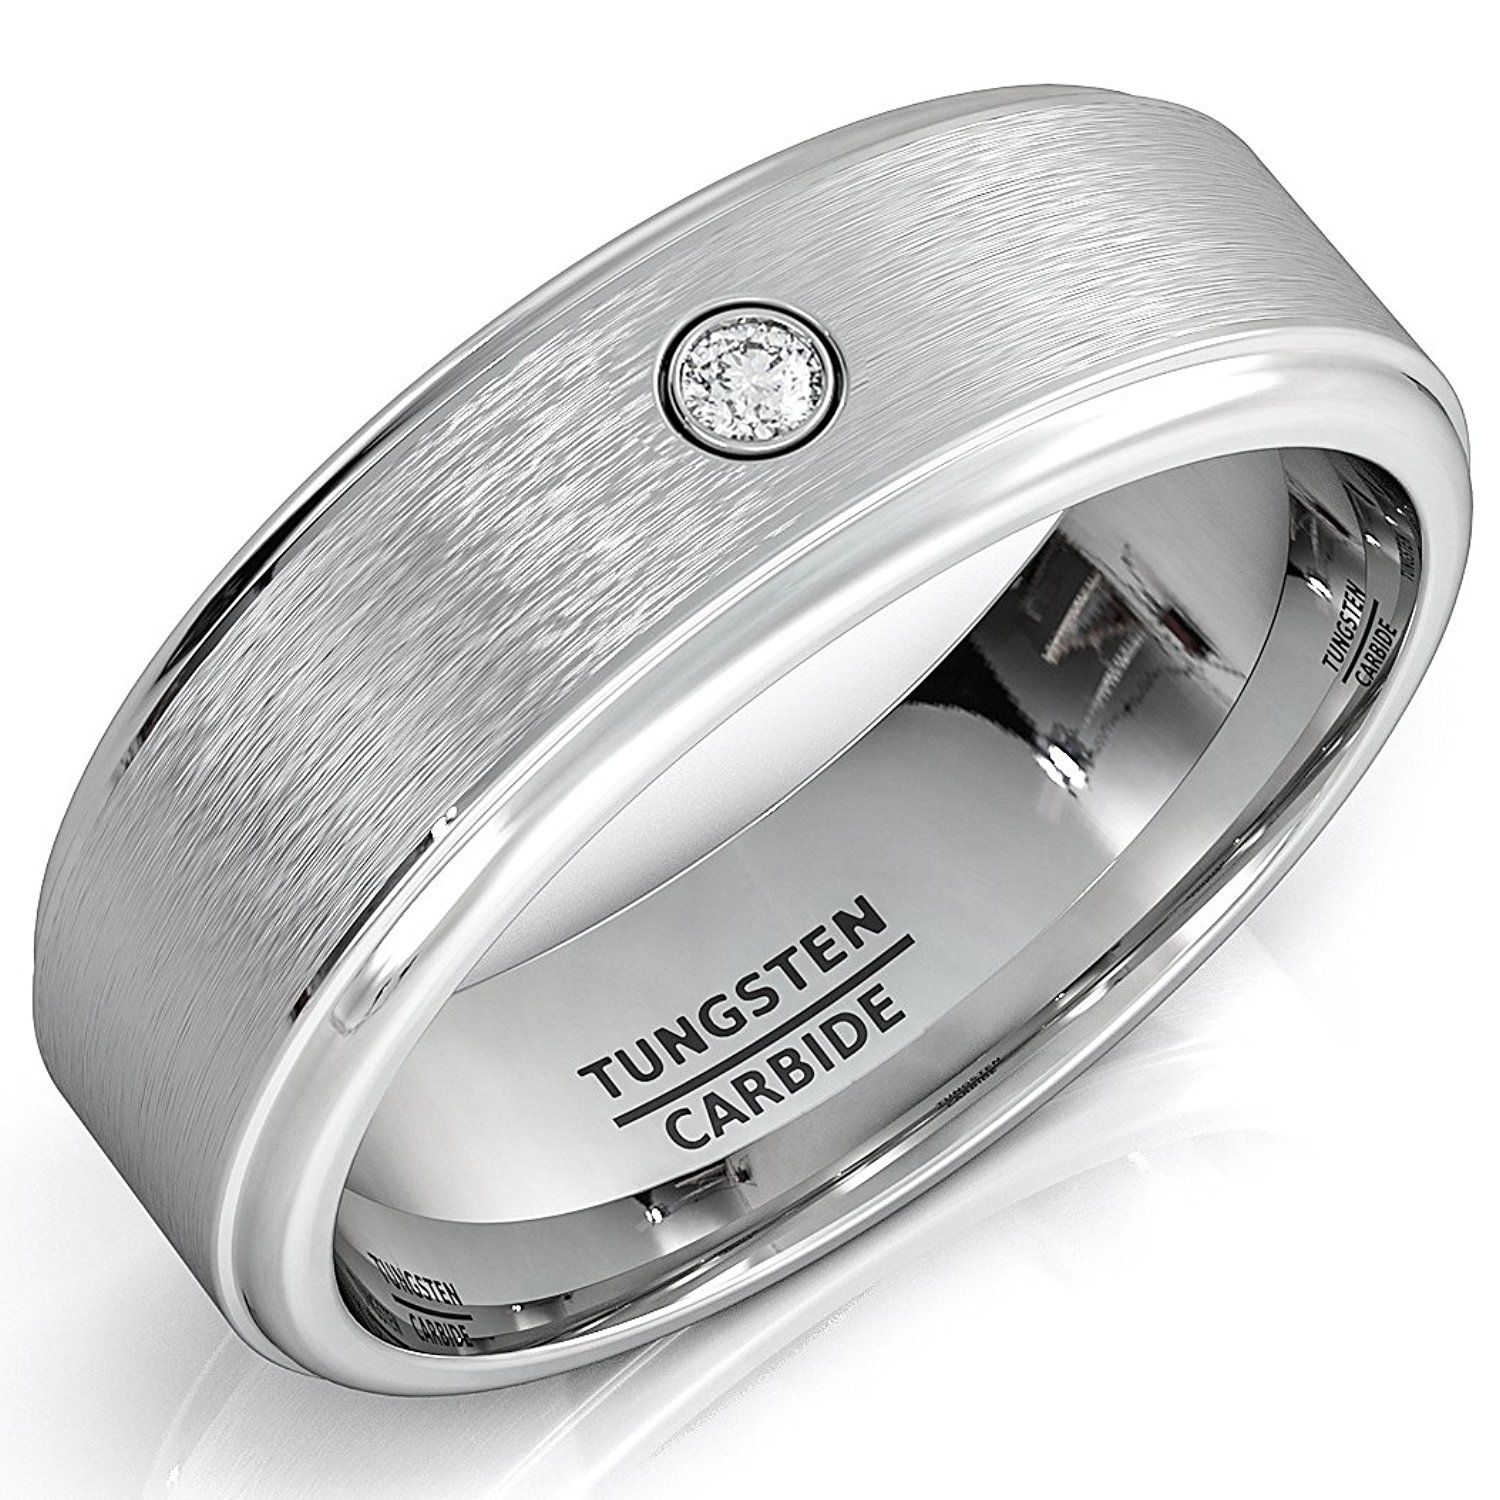 Mens Wedding Band Tungsten Ring Step Down Edges Brushed